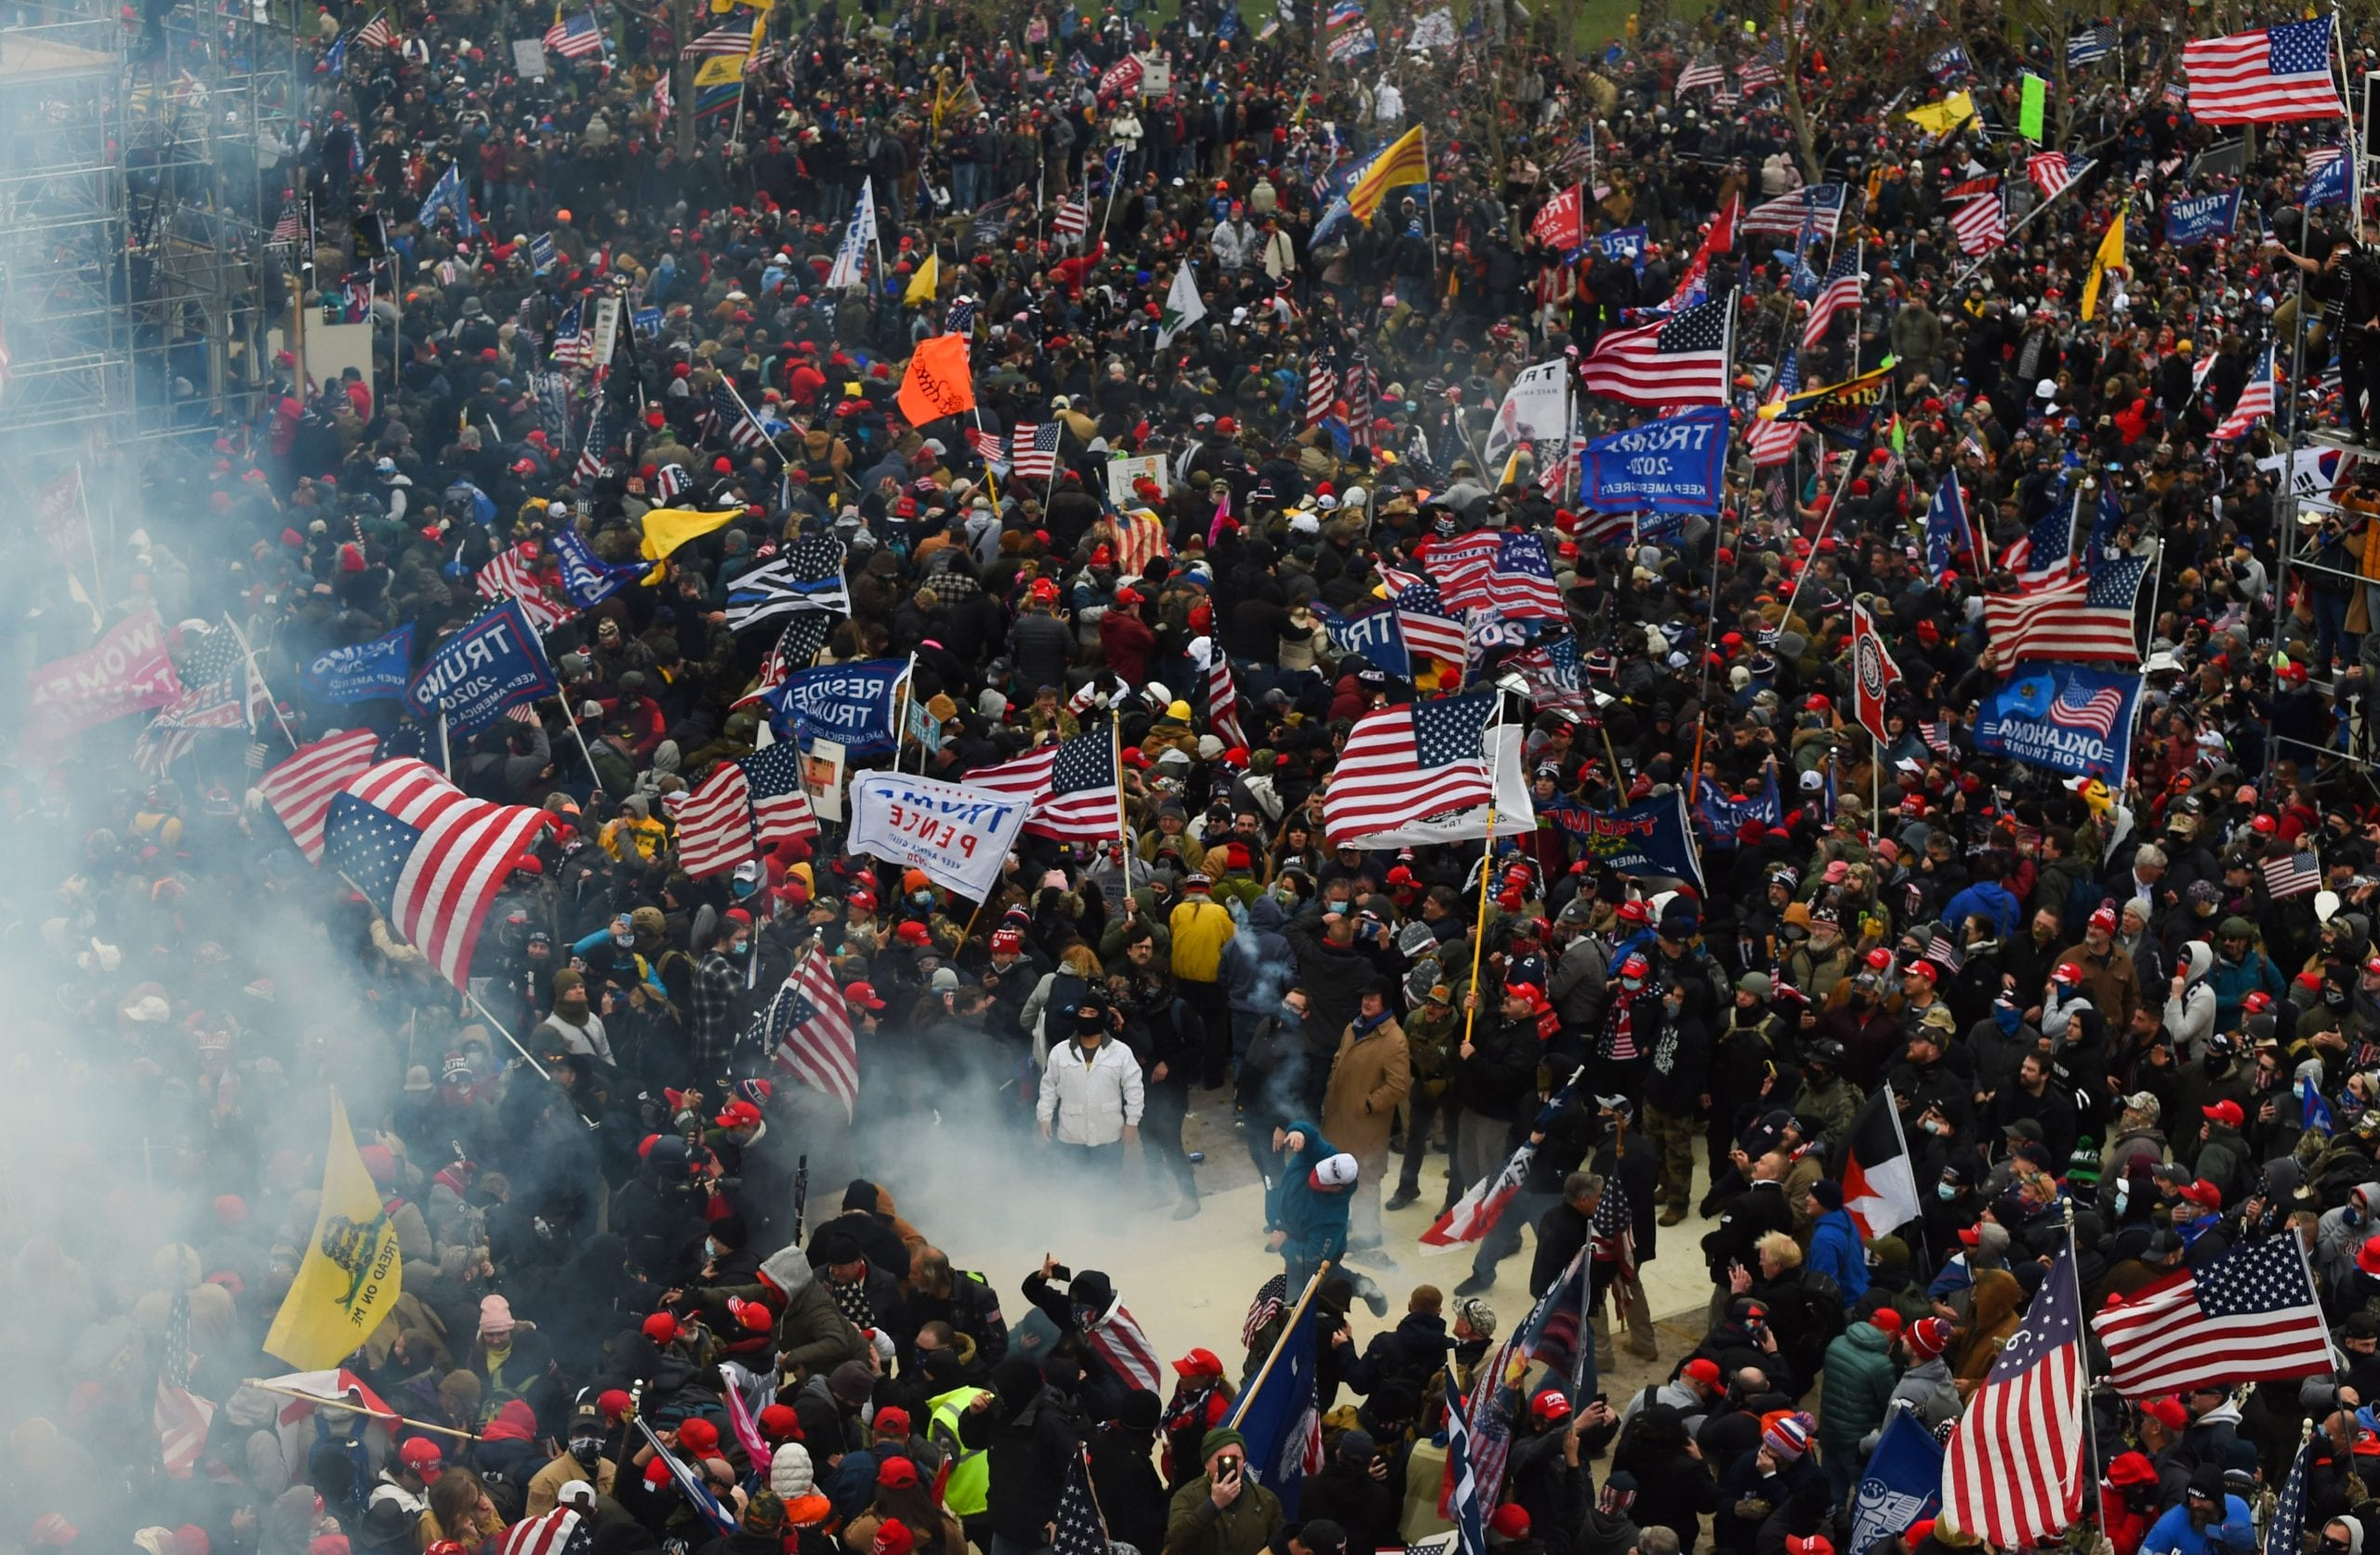 Trump supporters breeched security and entered the Capitol as Congress debated the a 2020 presidential election certification process.